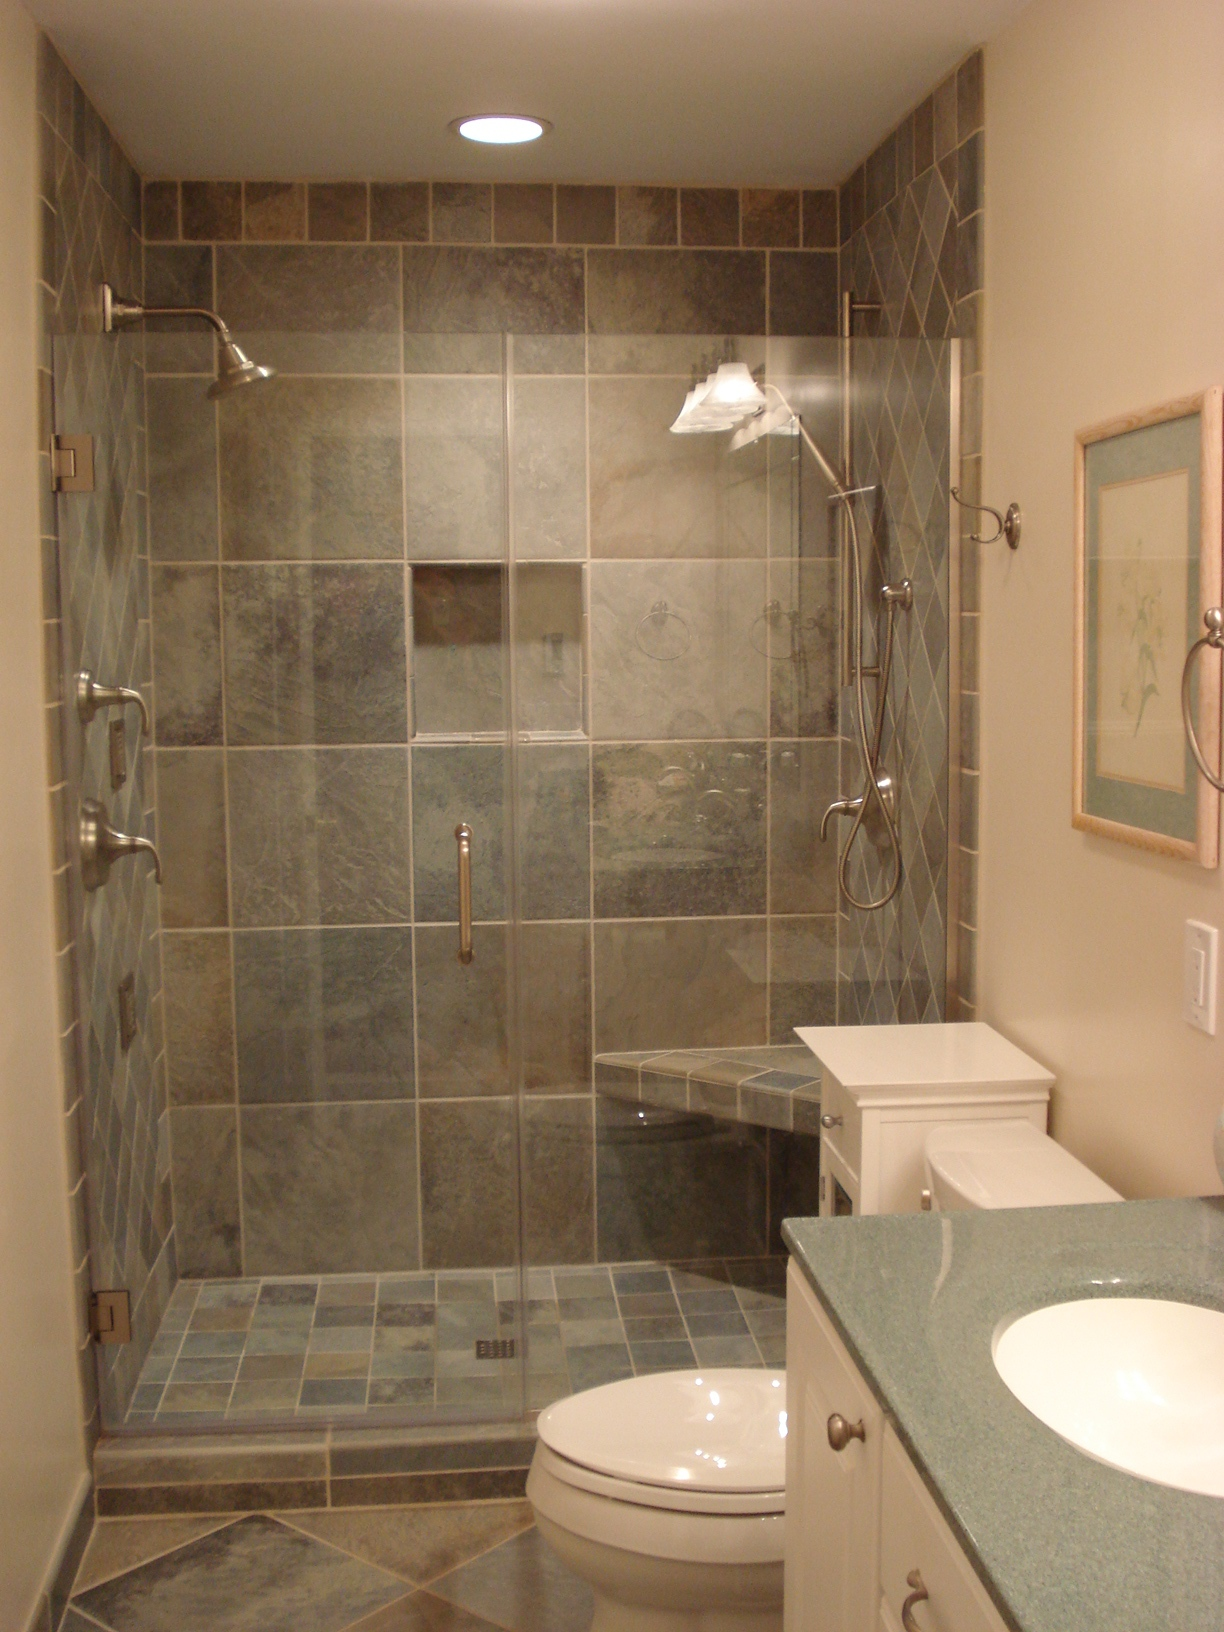 Lifetime design build inc completed projects for Bathroom builders